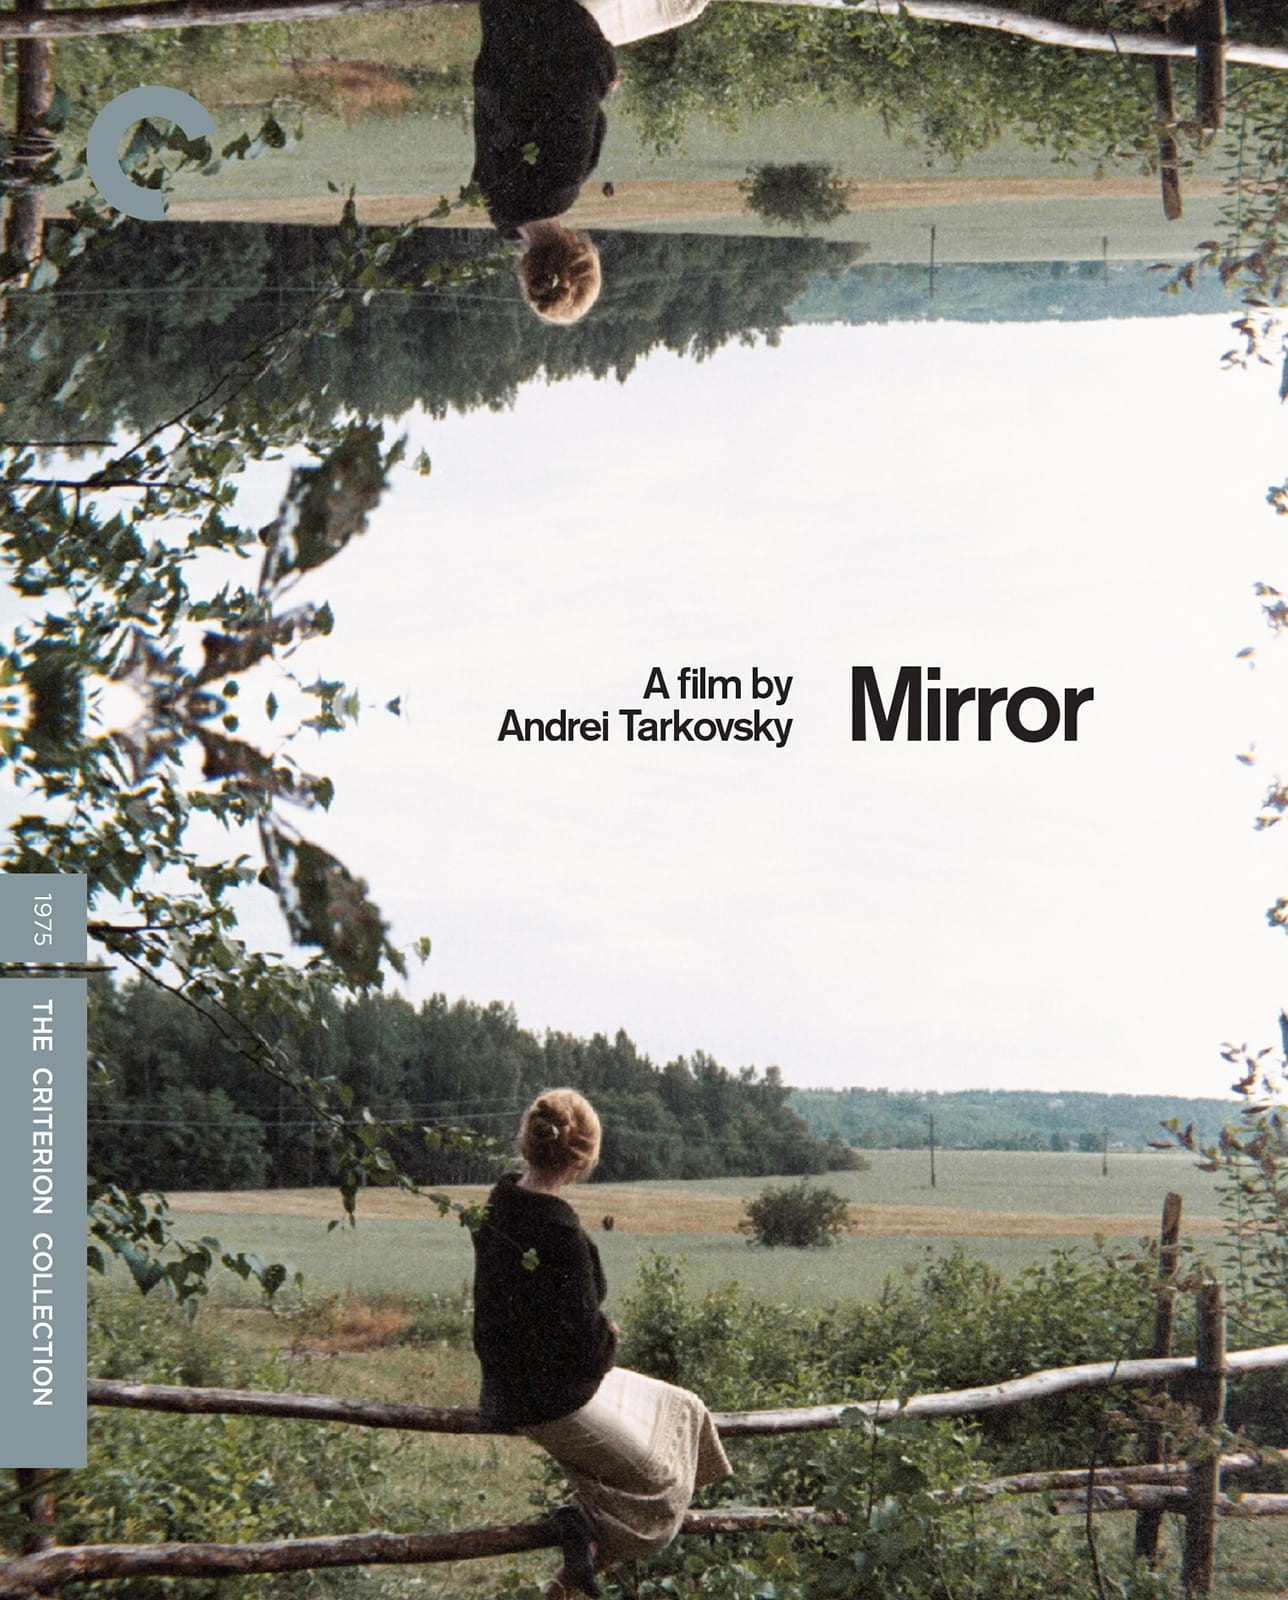 Mirror (1975) | The Criterion Collection